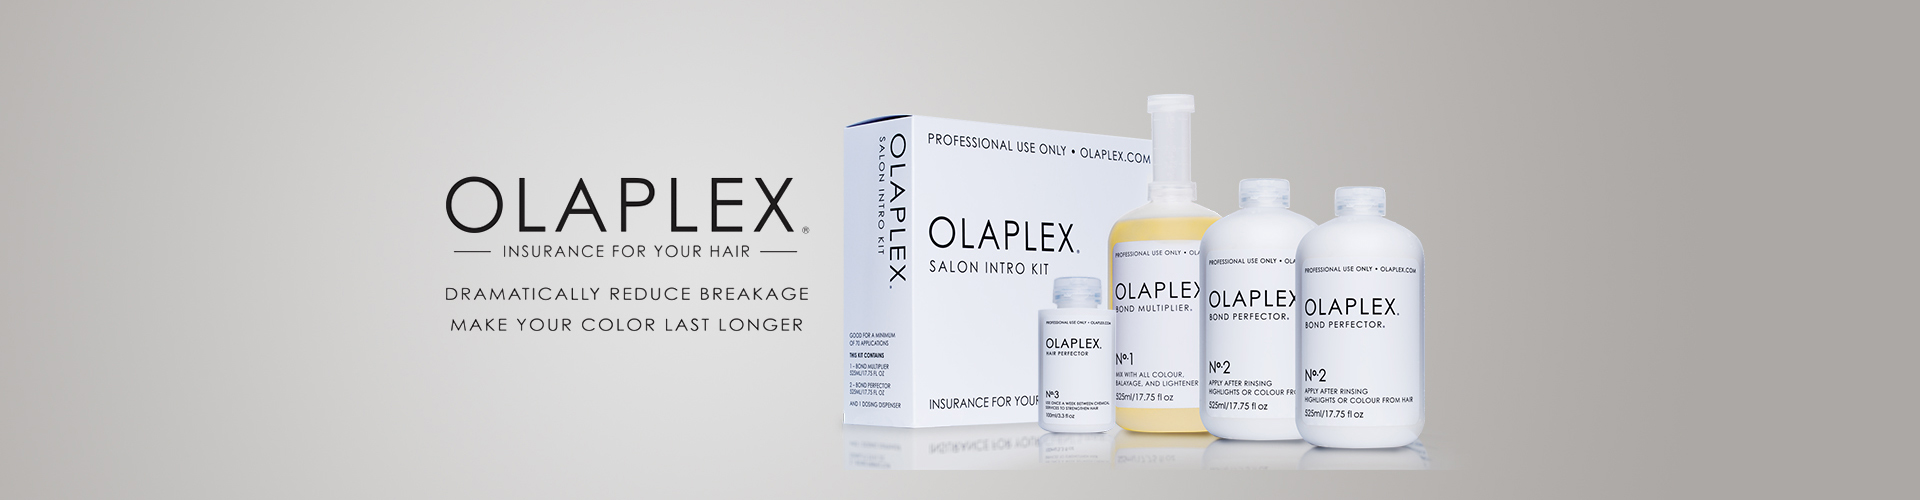 We-hair-salon-slider-olaplex-main